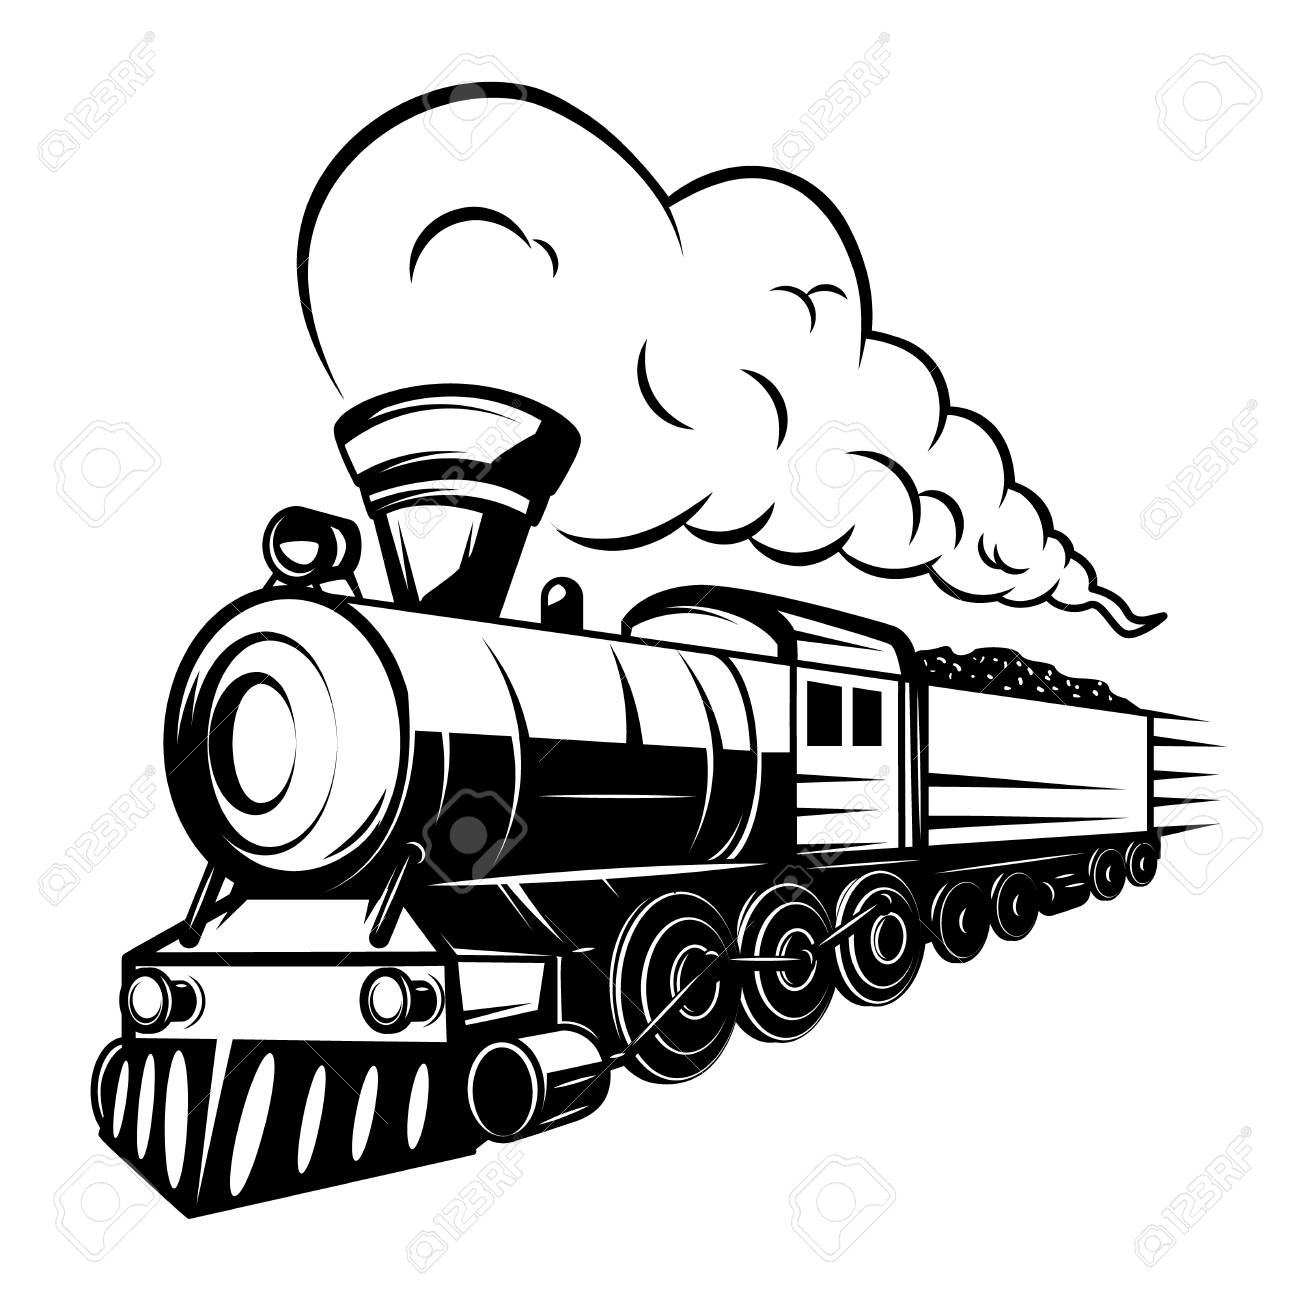 Retro Train Illustration Isolated On White Background Design Royalty Free Cliparts Vectors And Stock Illustration Image 98931962